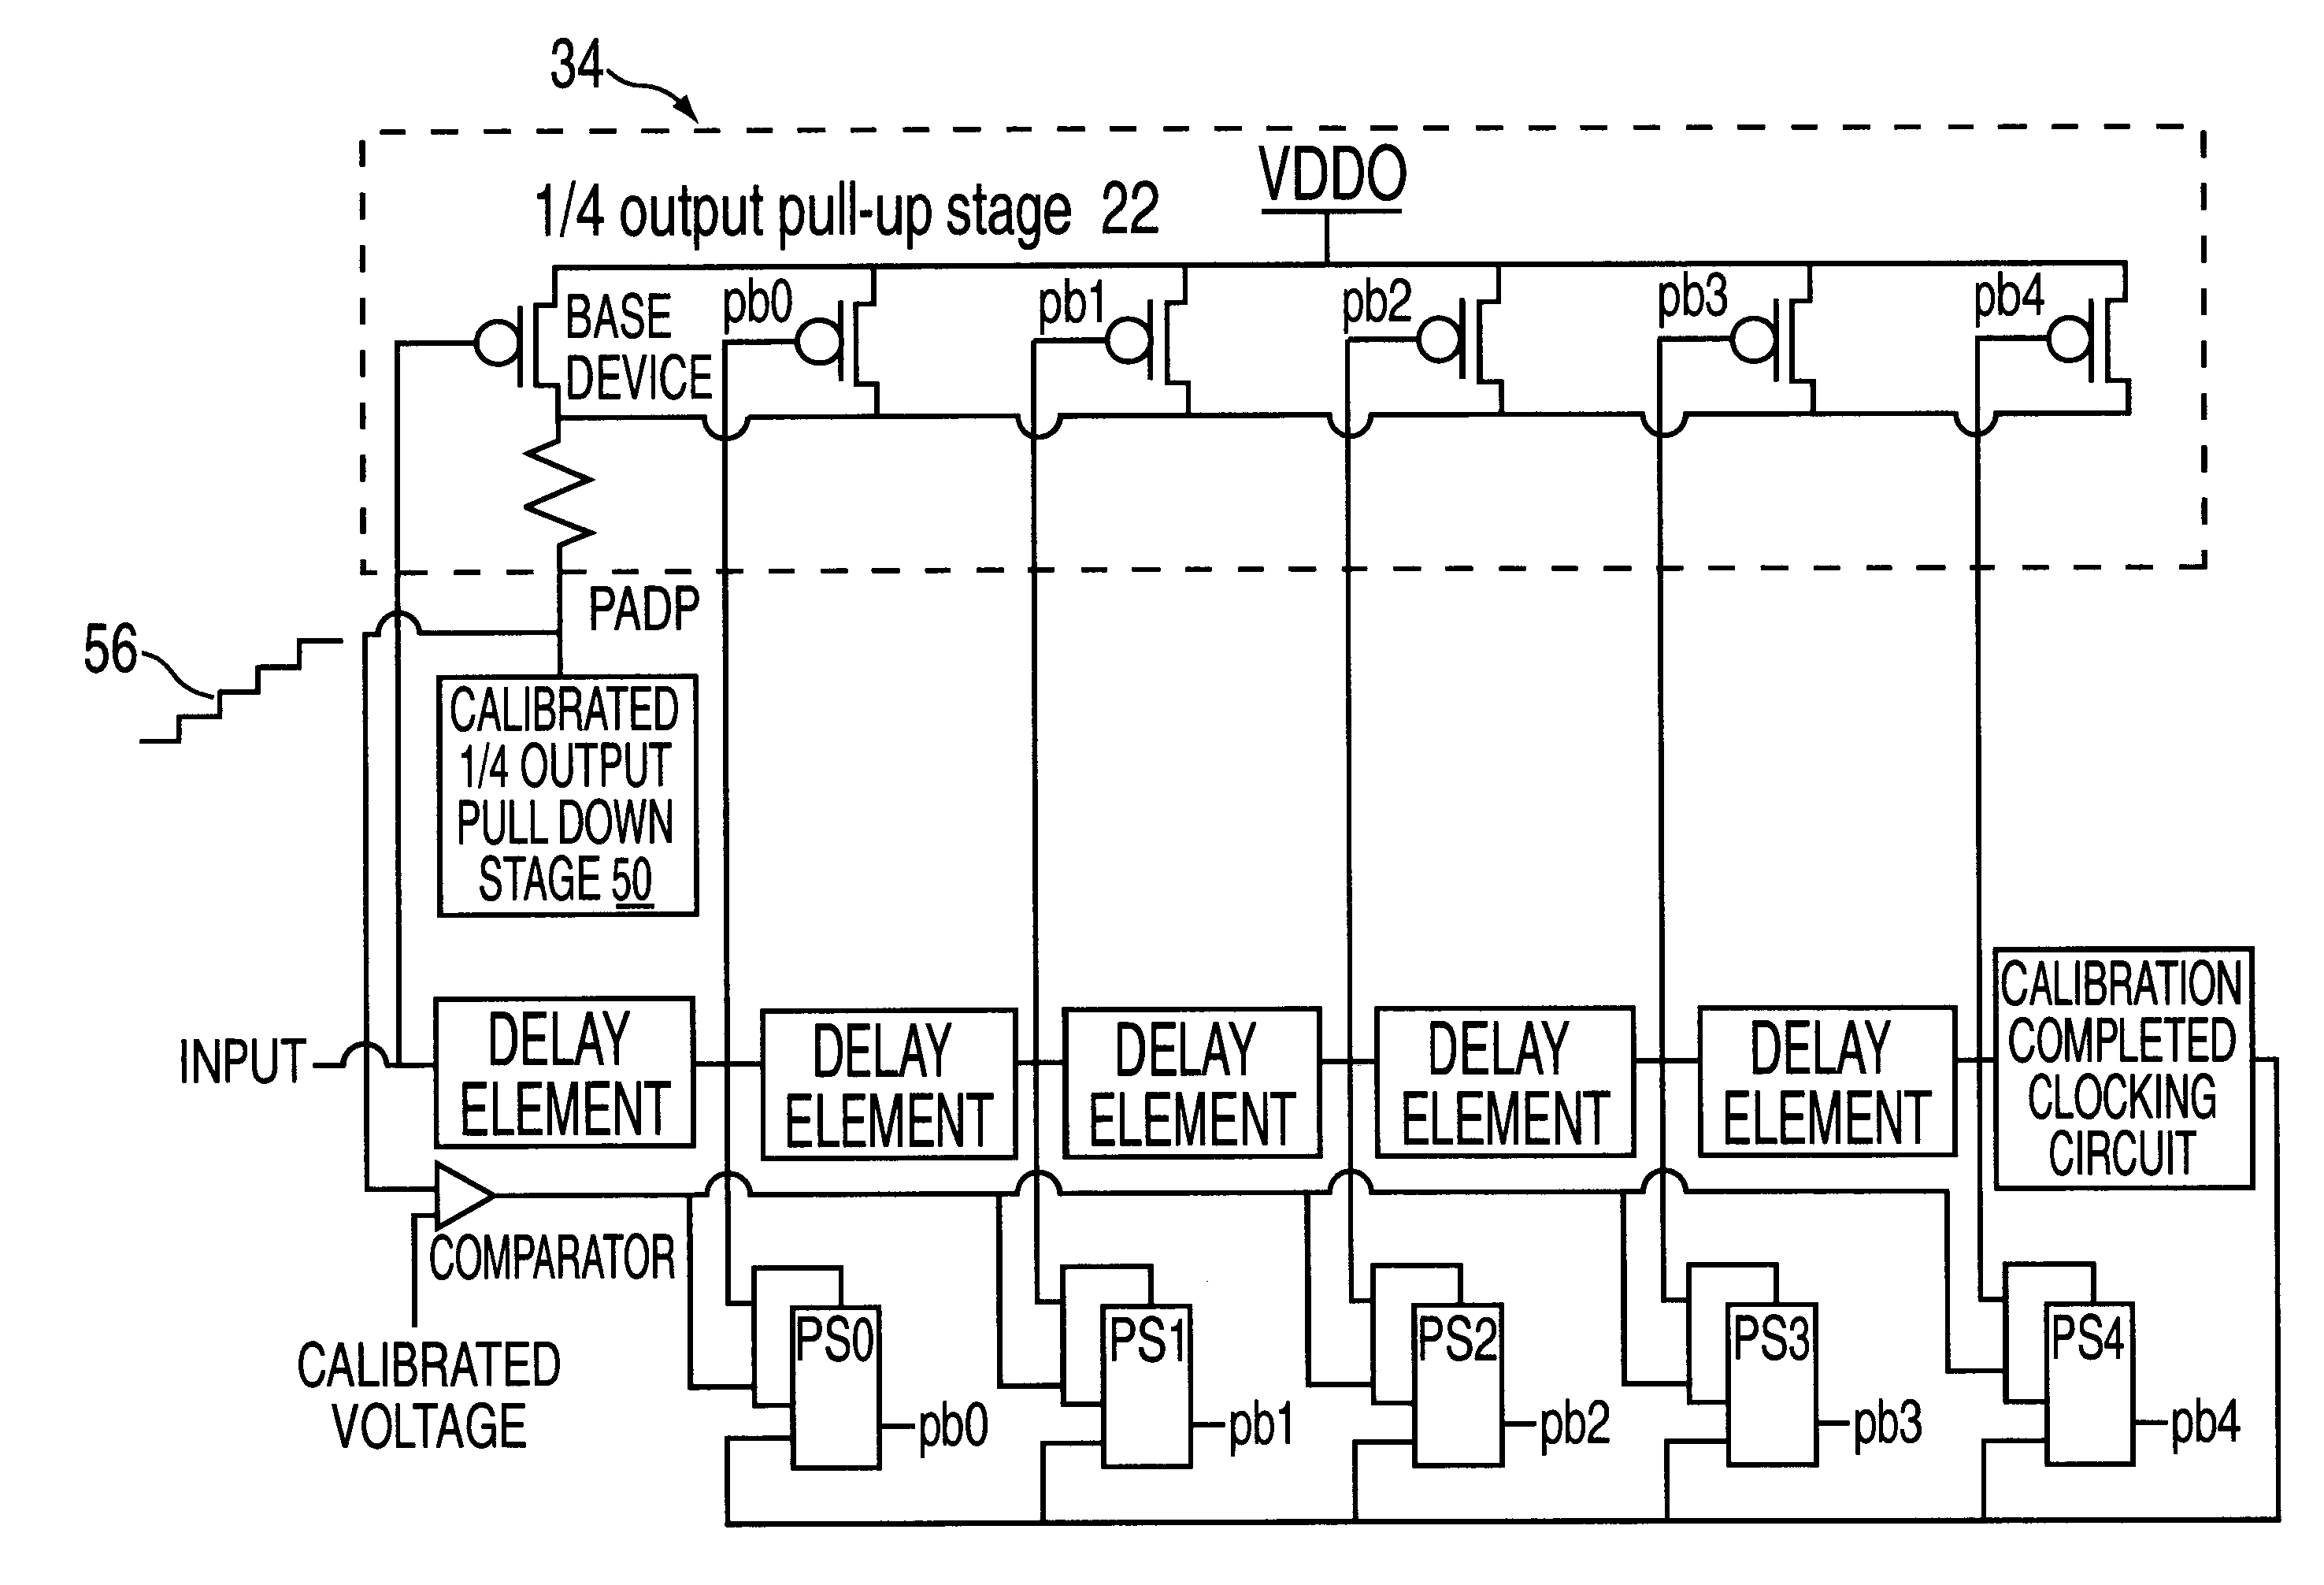 Analytics For Us Patent No 6636821 Output Driver Impedance Circuitdrivercircuitjpg The I O Circuit A To Determine Value Of Actual As Compared With Its Target And Determination